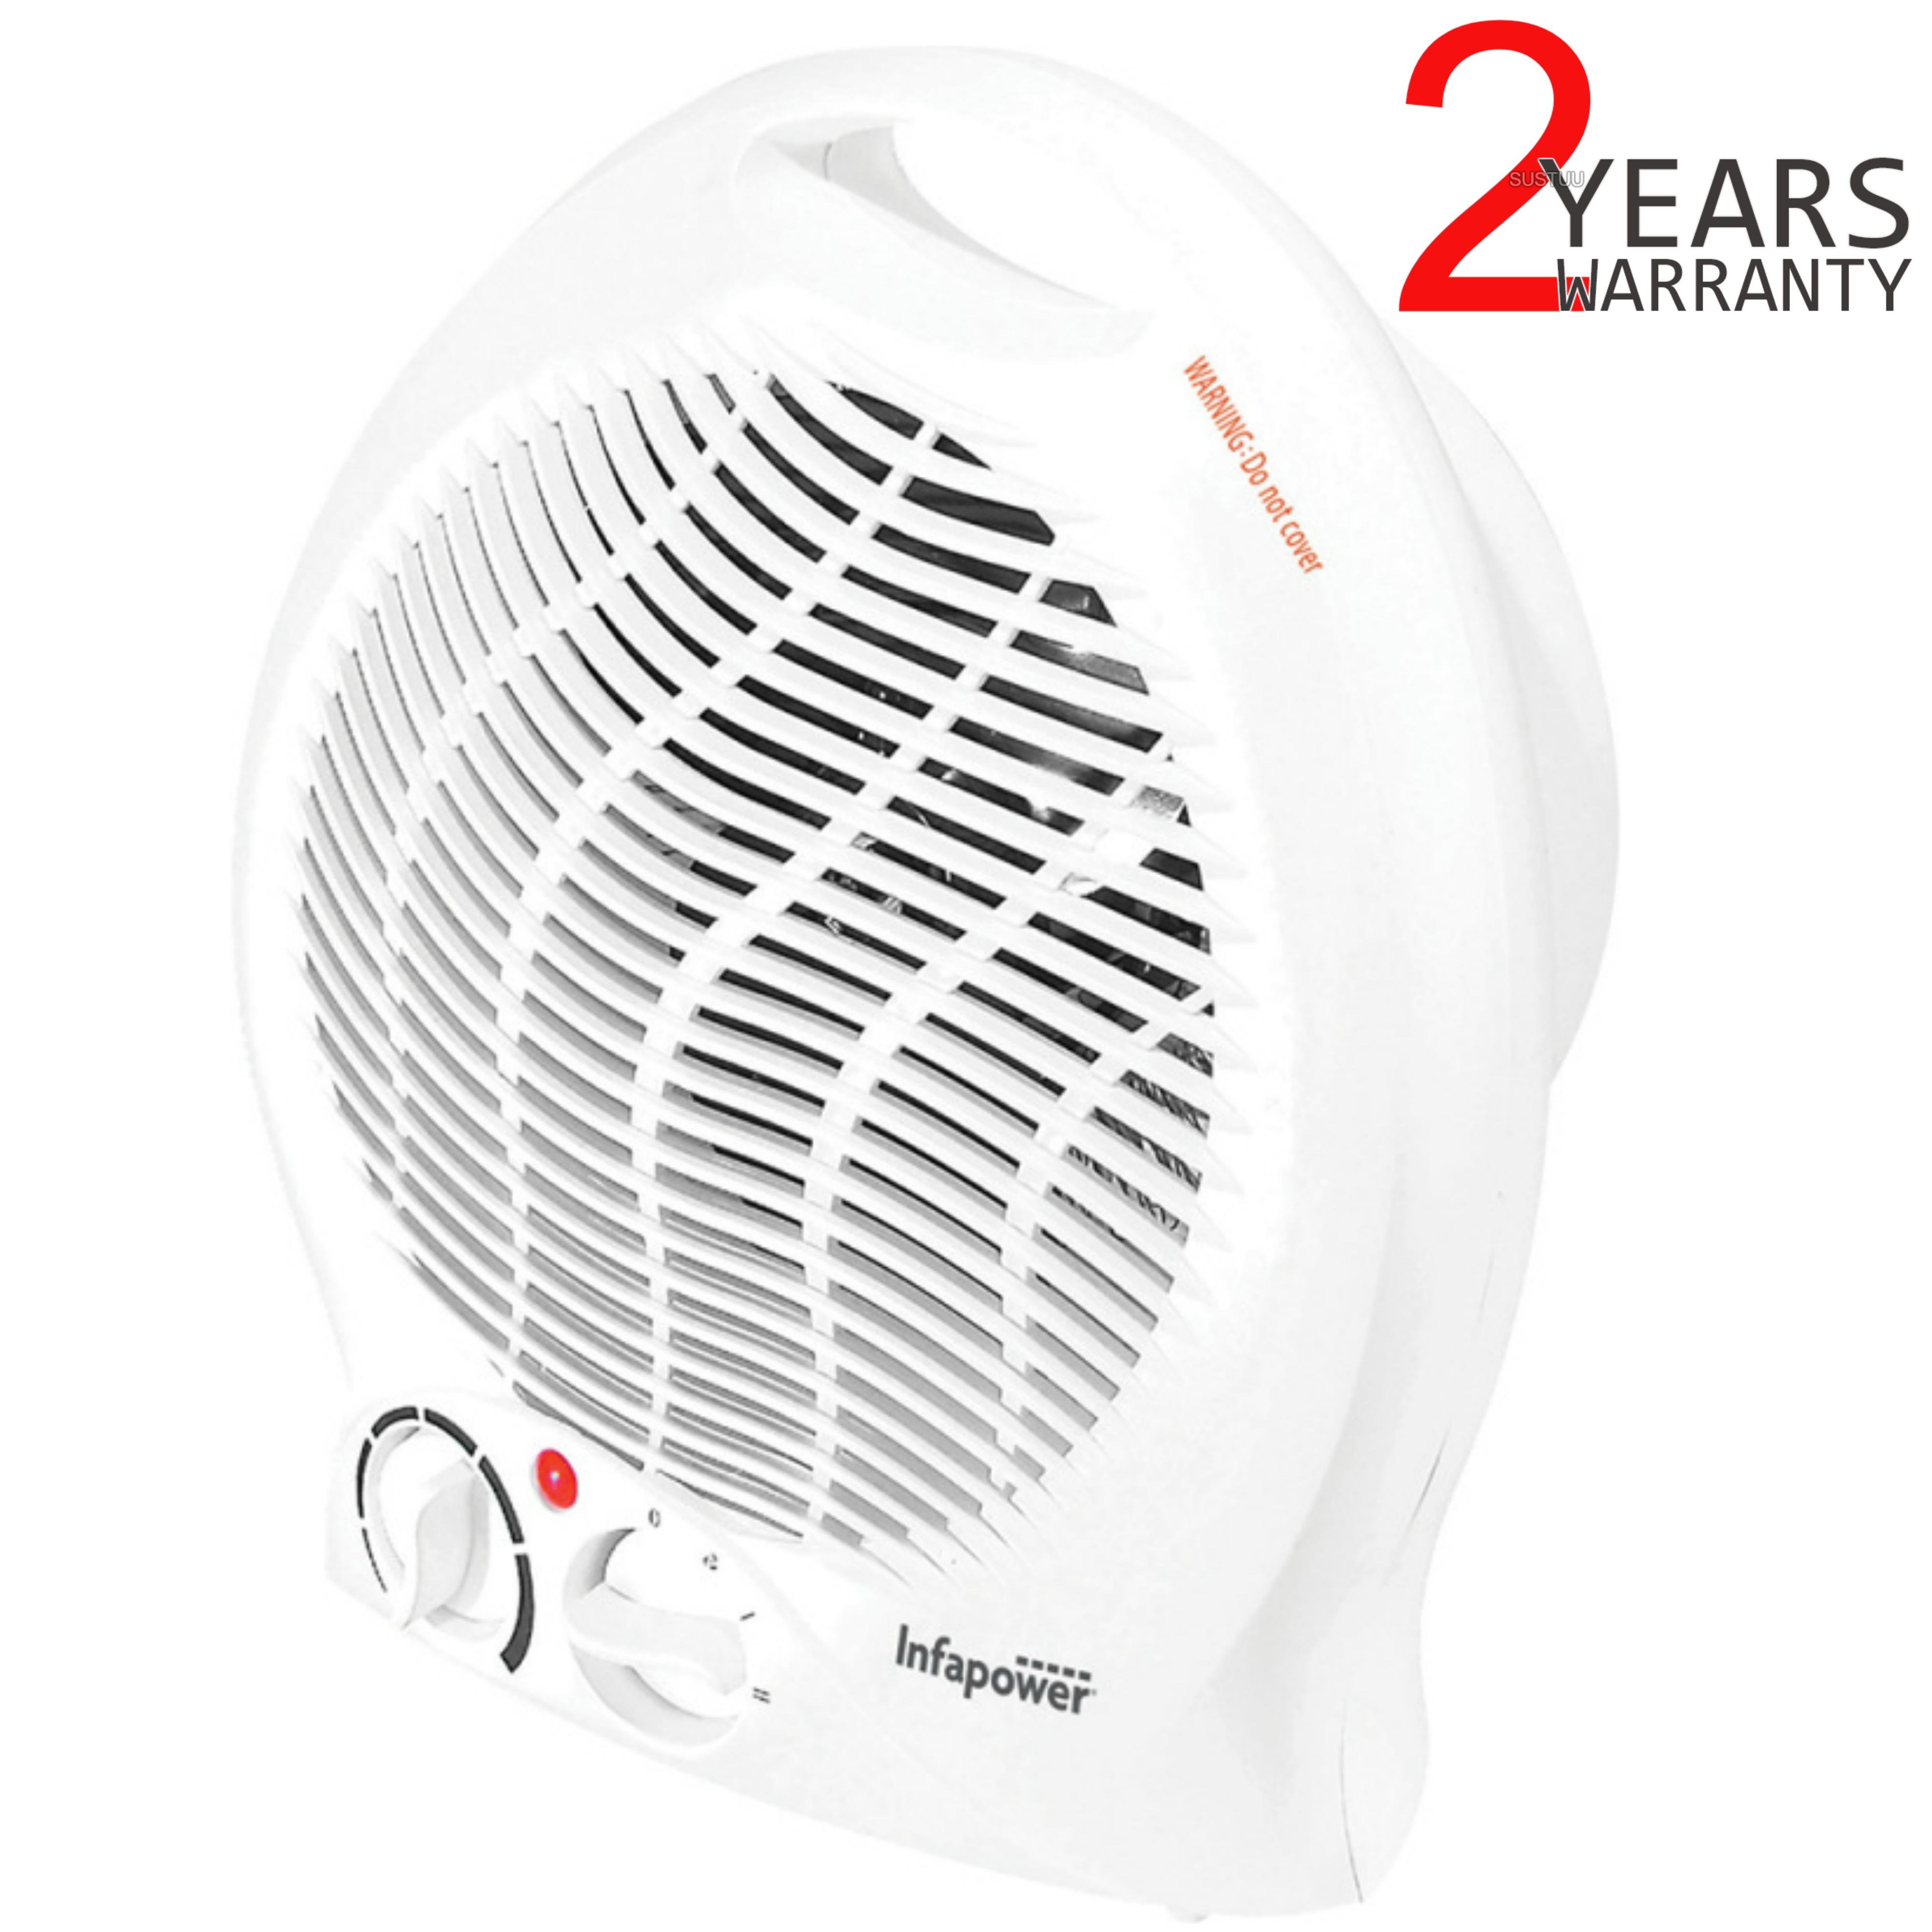 Infapower X401 Upright Turbo Fan Heater | 3 Modes?2000W | Overheat Protection | White